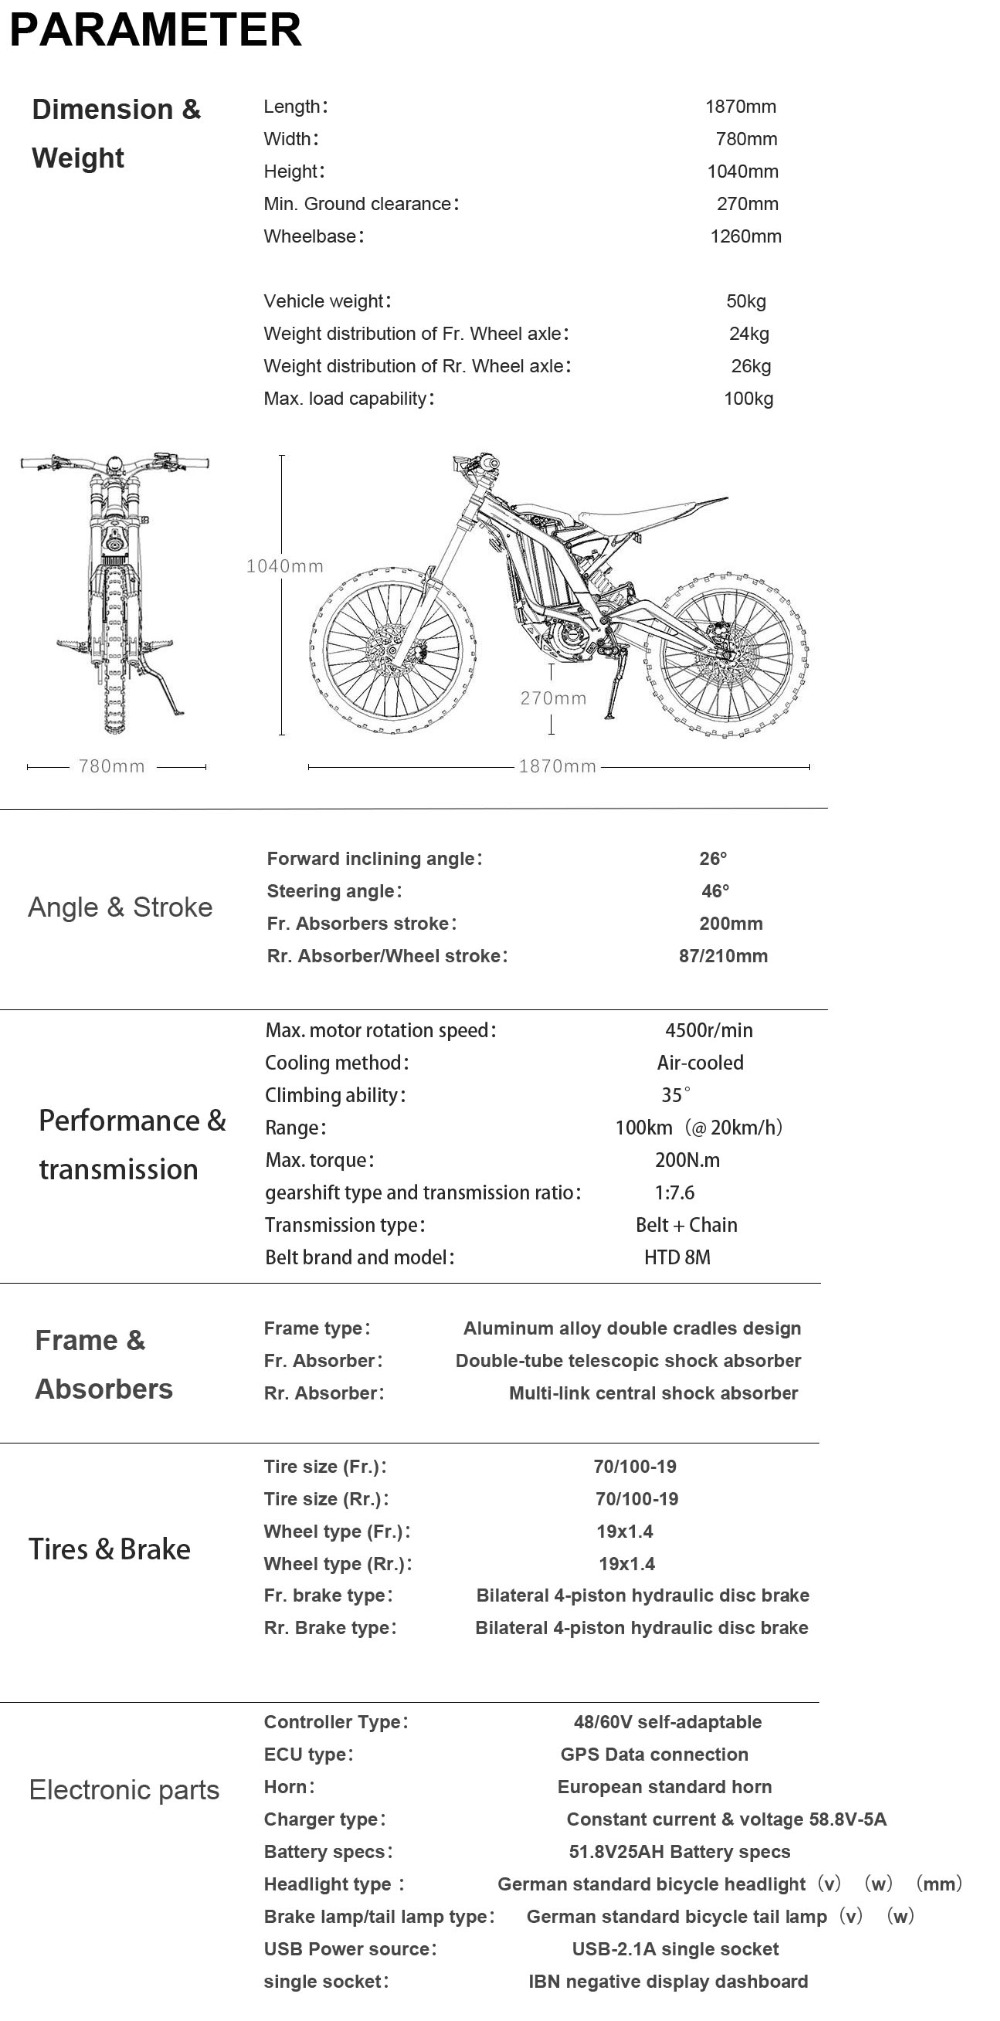 4 PARAMETER  SUR-RON-Firefly-Motorbike-Dimensions